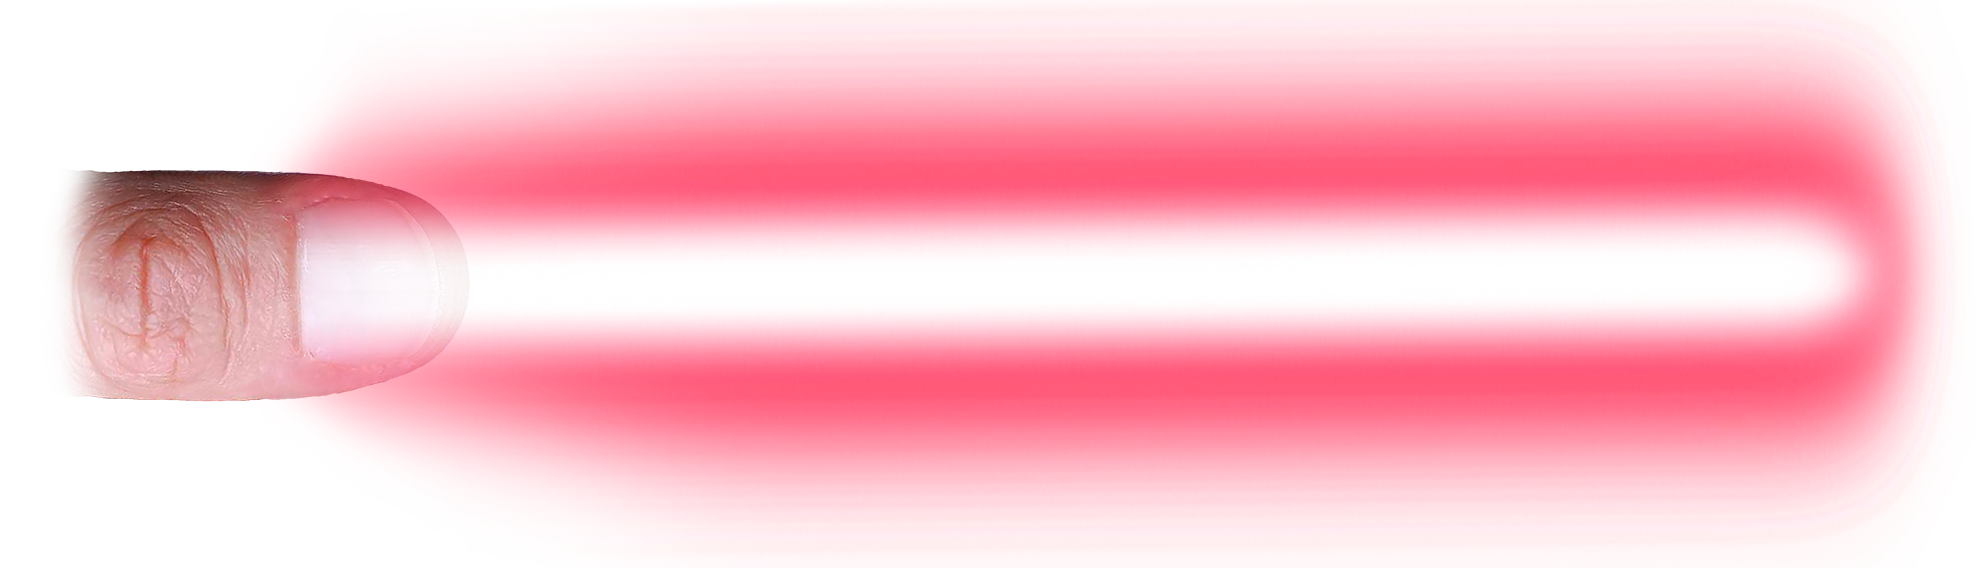 THUMB SABER GRAPHIC_RED.png